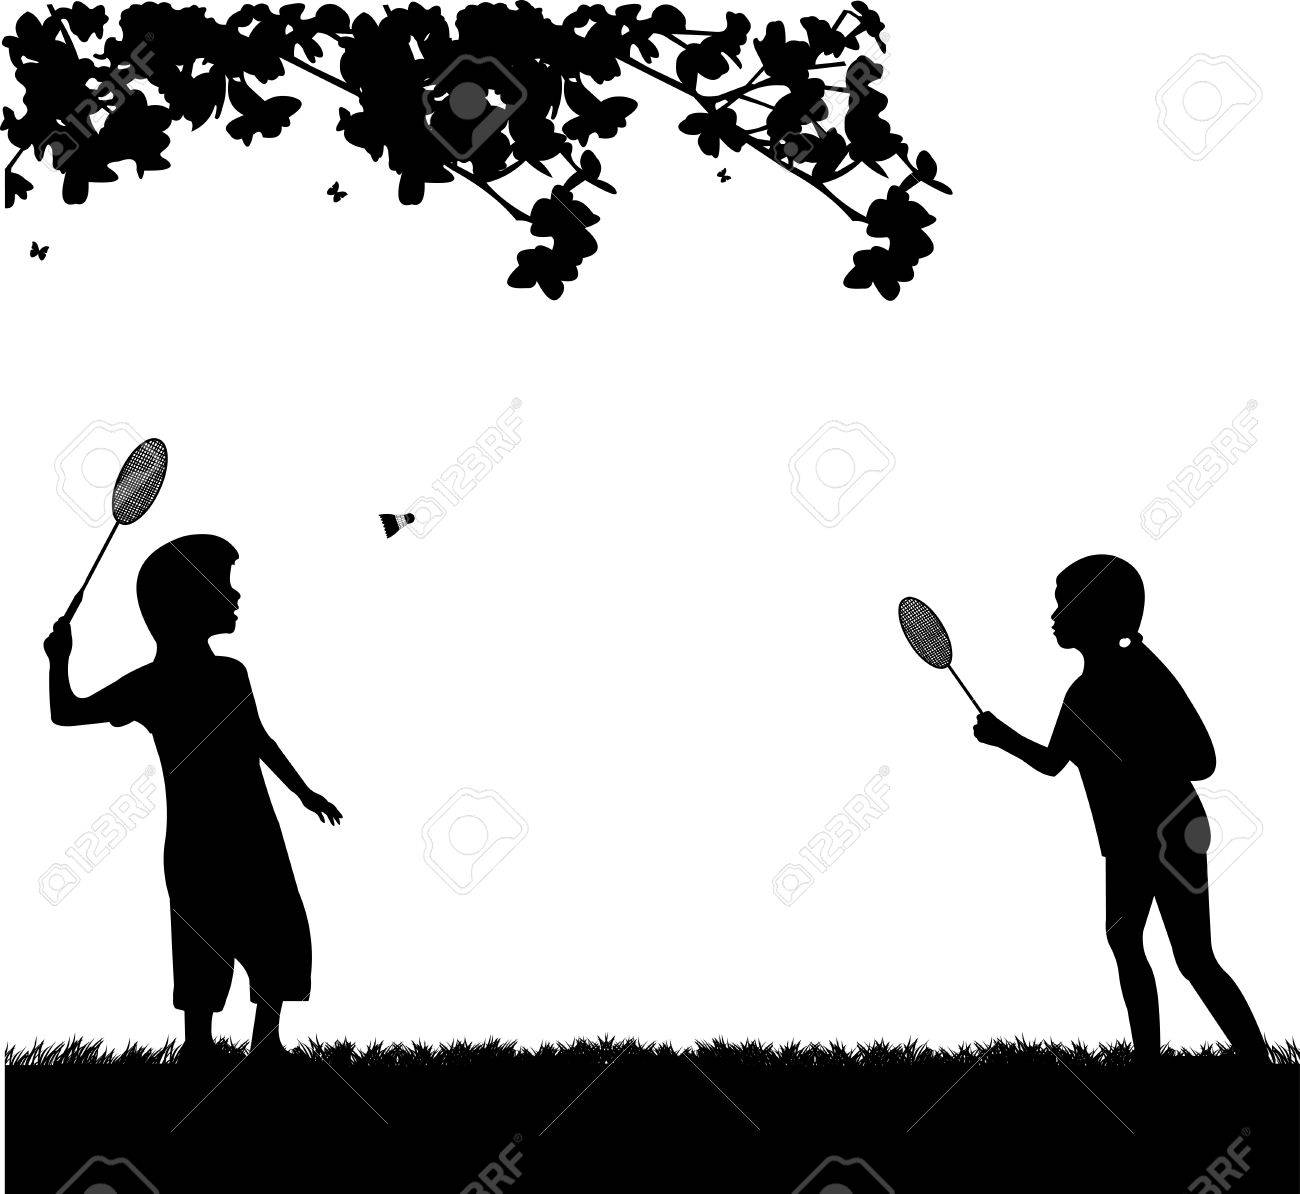 Spring Silhouettes And Shadows >> Kids Playing Badminton Outdoor In Spring Silhouette One In The